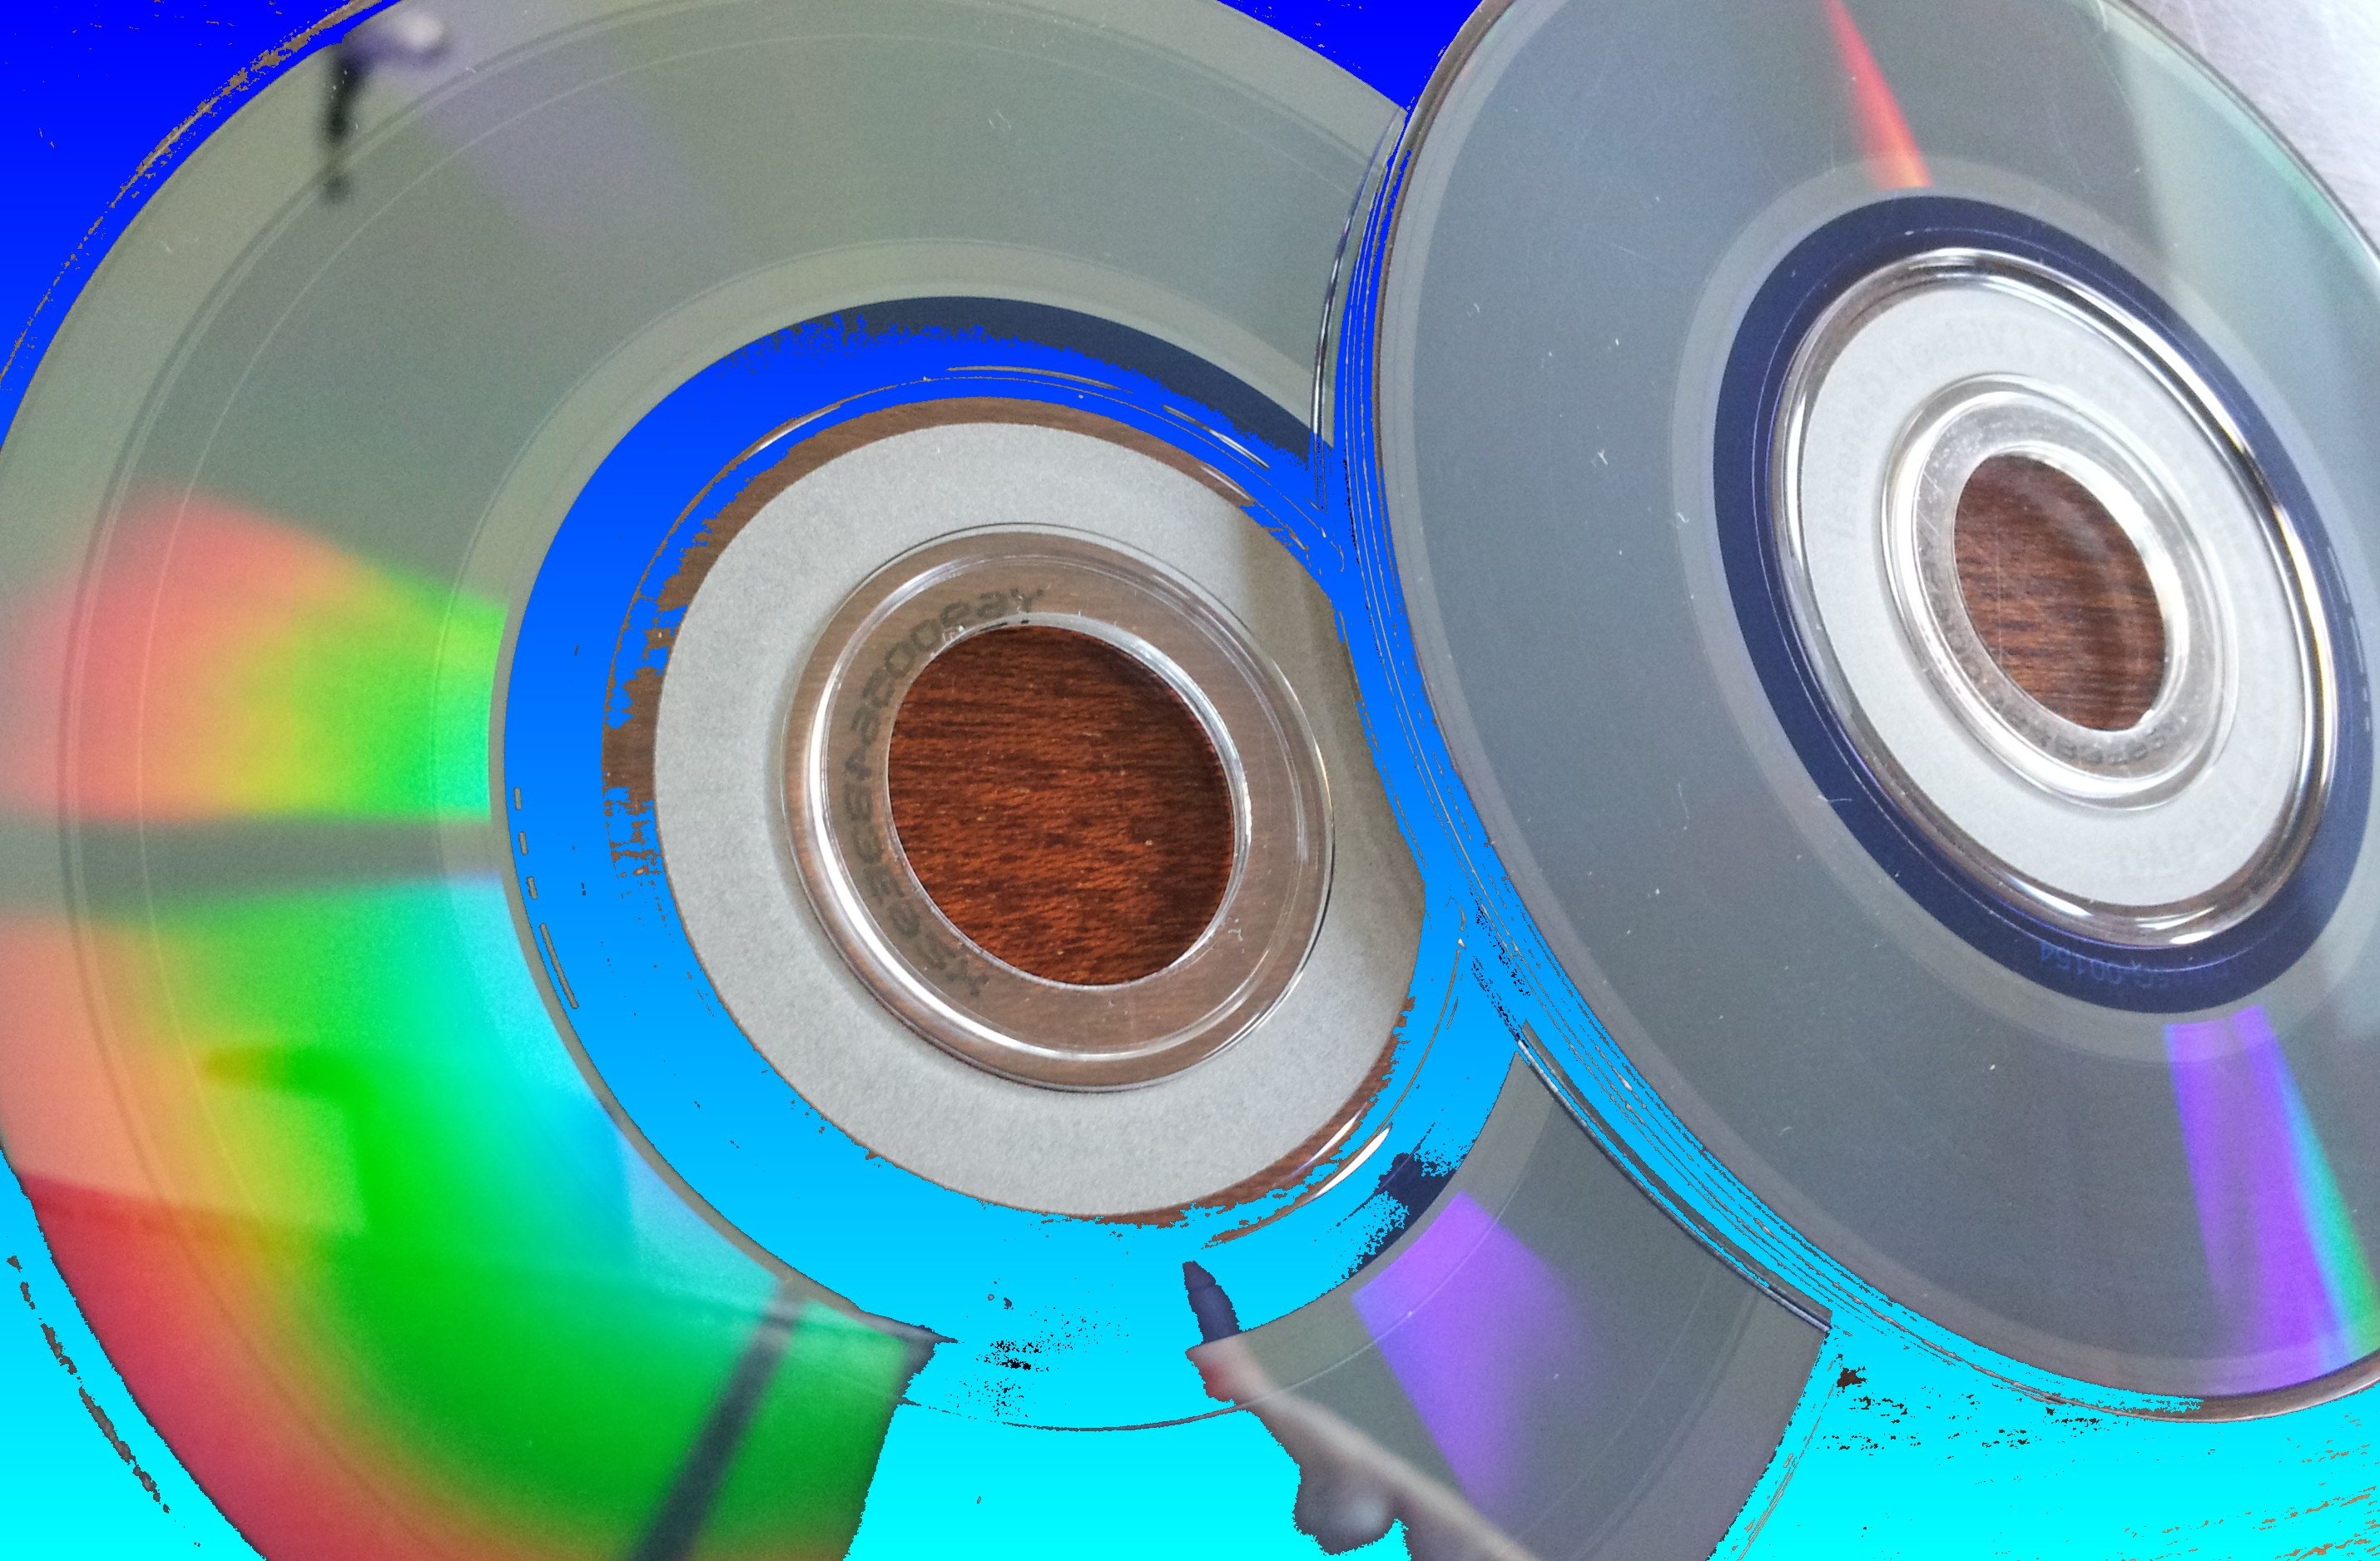 A pair of Mini DVDs that had recordings on them but had not been finalised. Therefore the disks would not play the movies, and the customer needed them recovering.